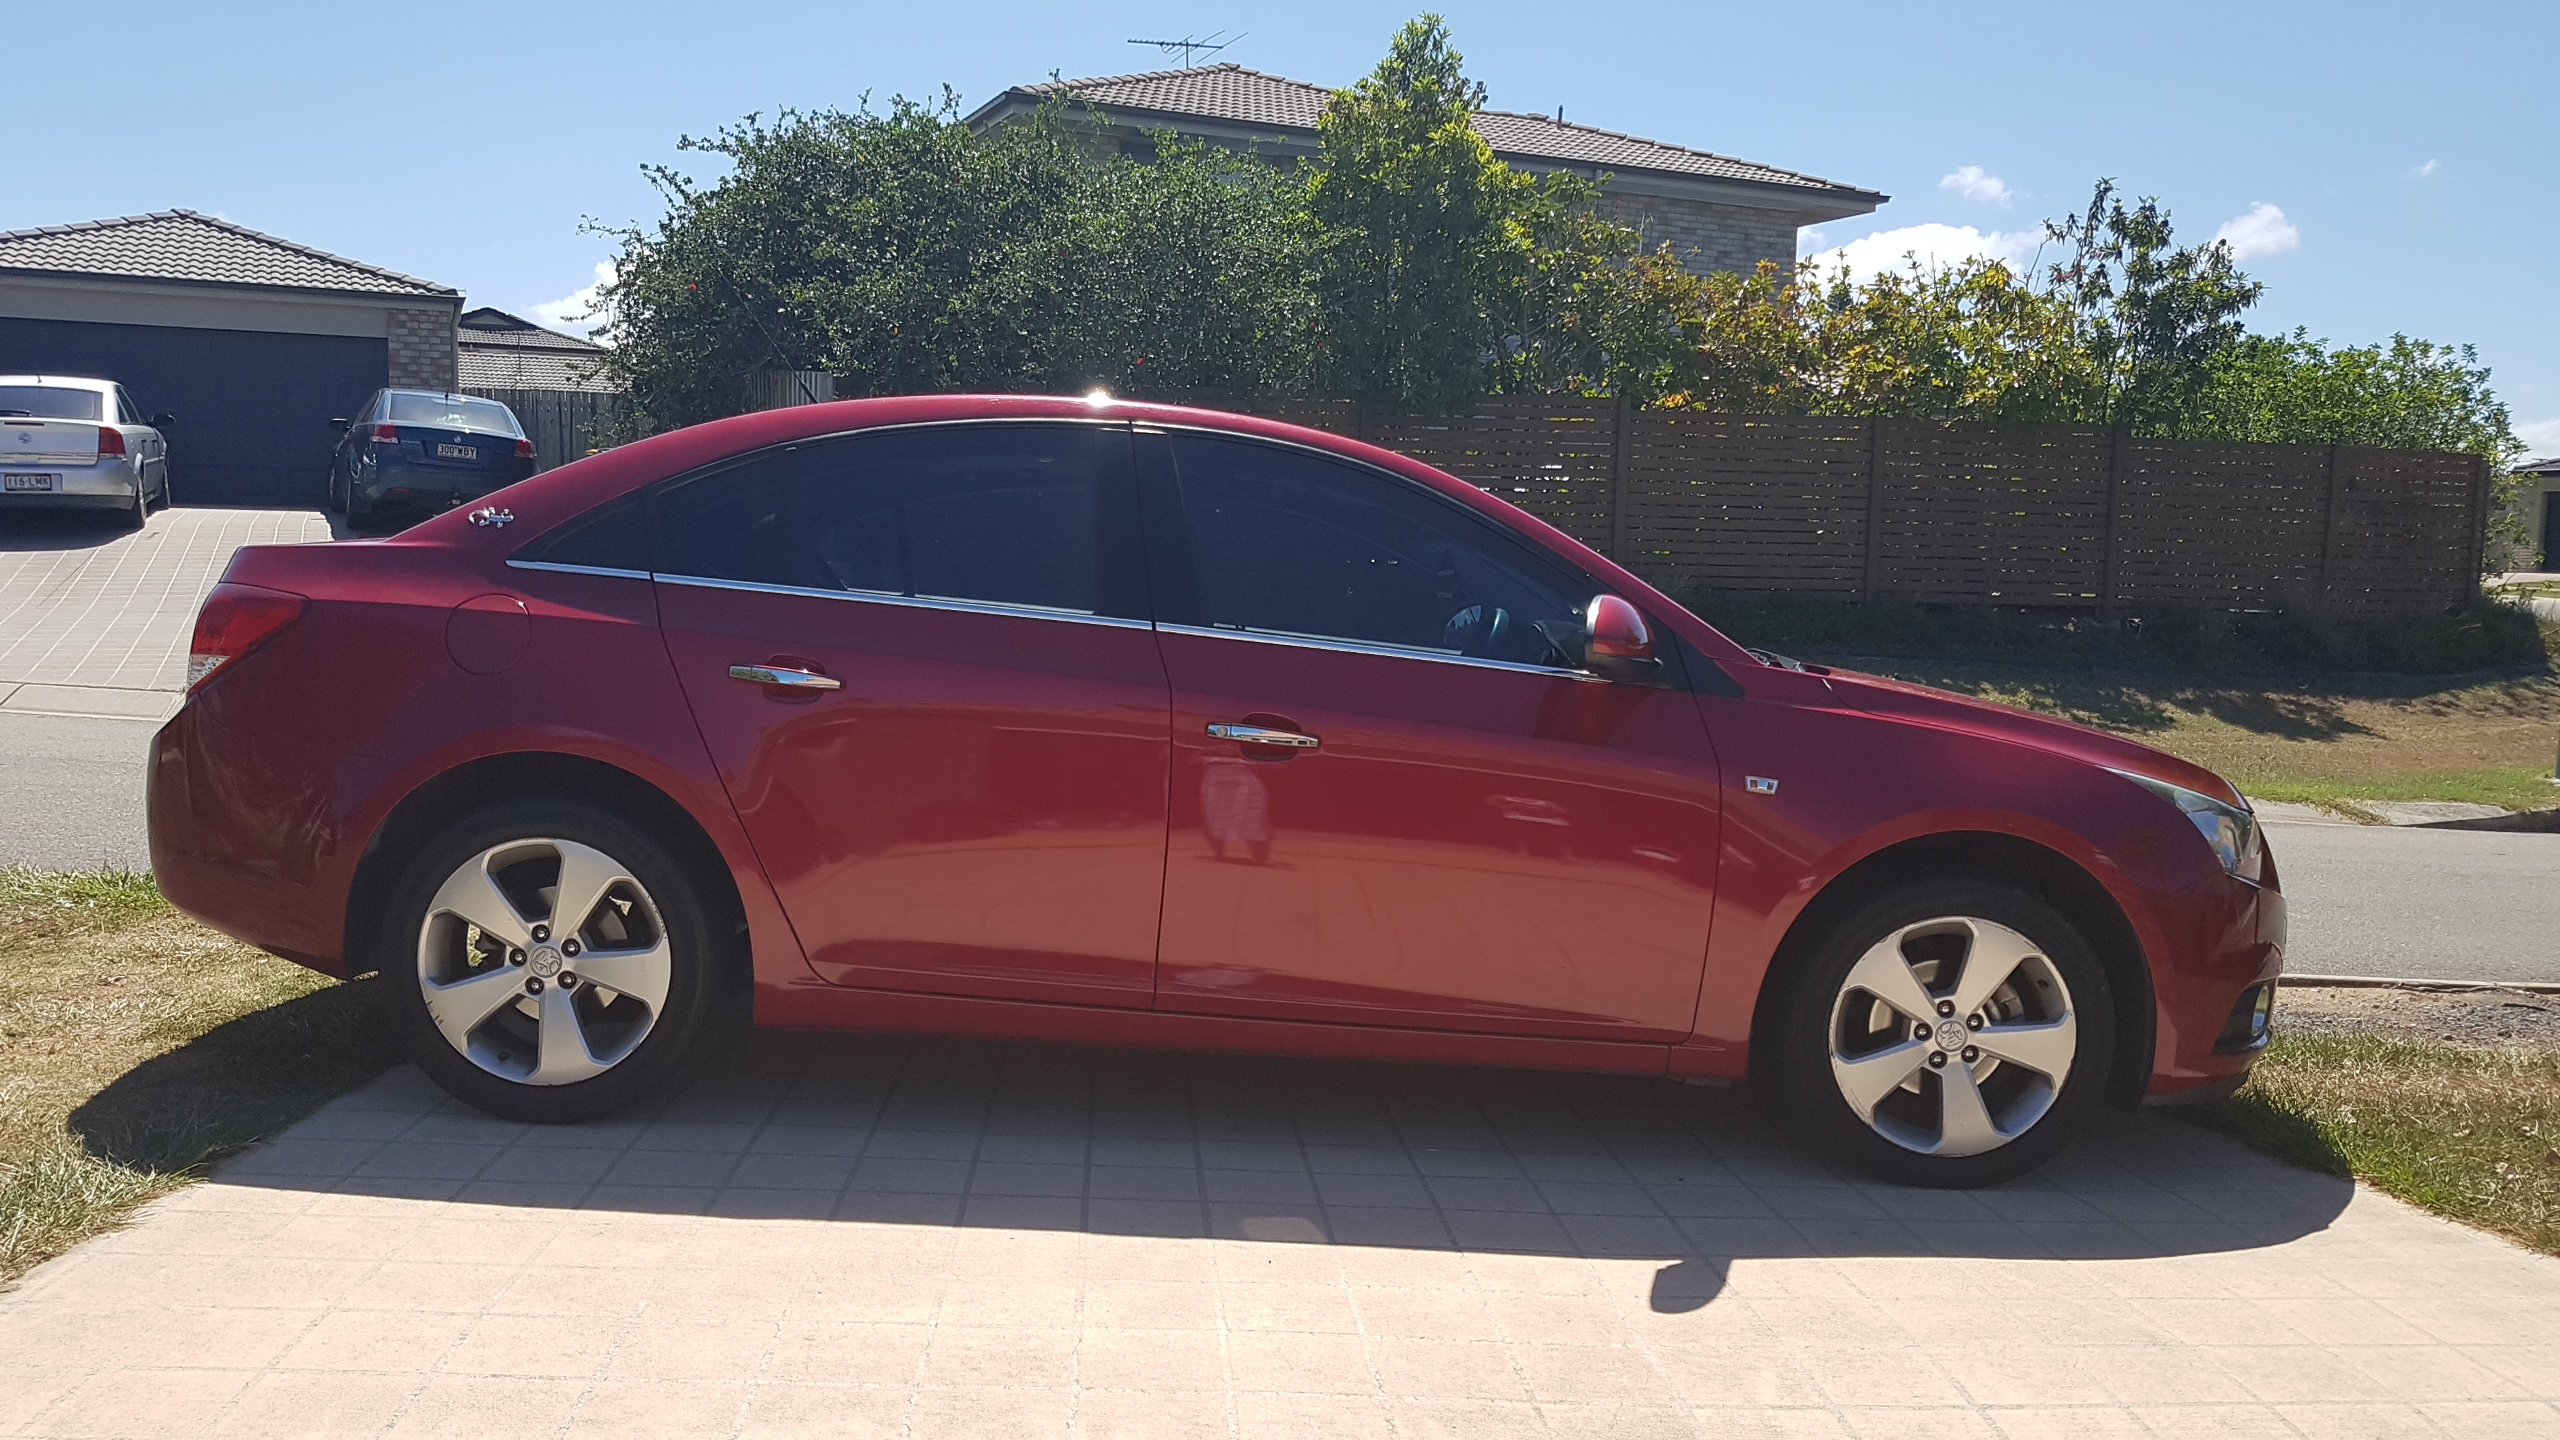 2011 Holden Cruze Cdx Jg Car Sales Qld Brisbane North